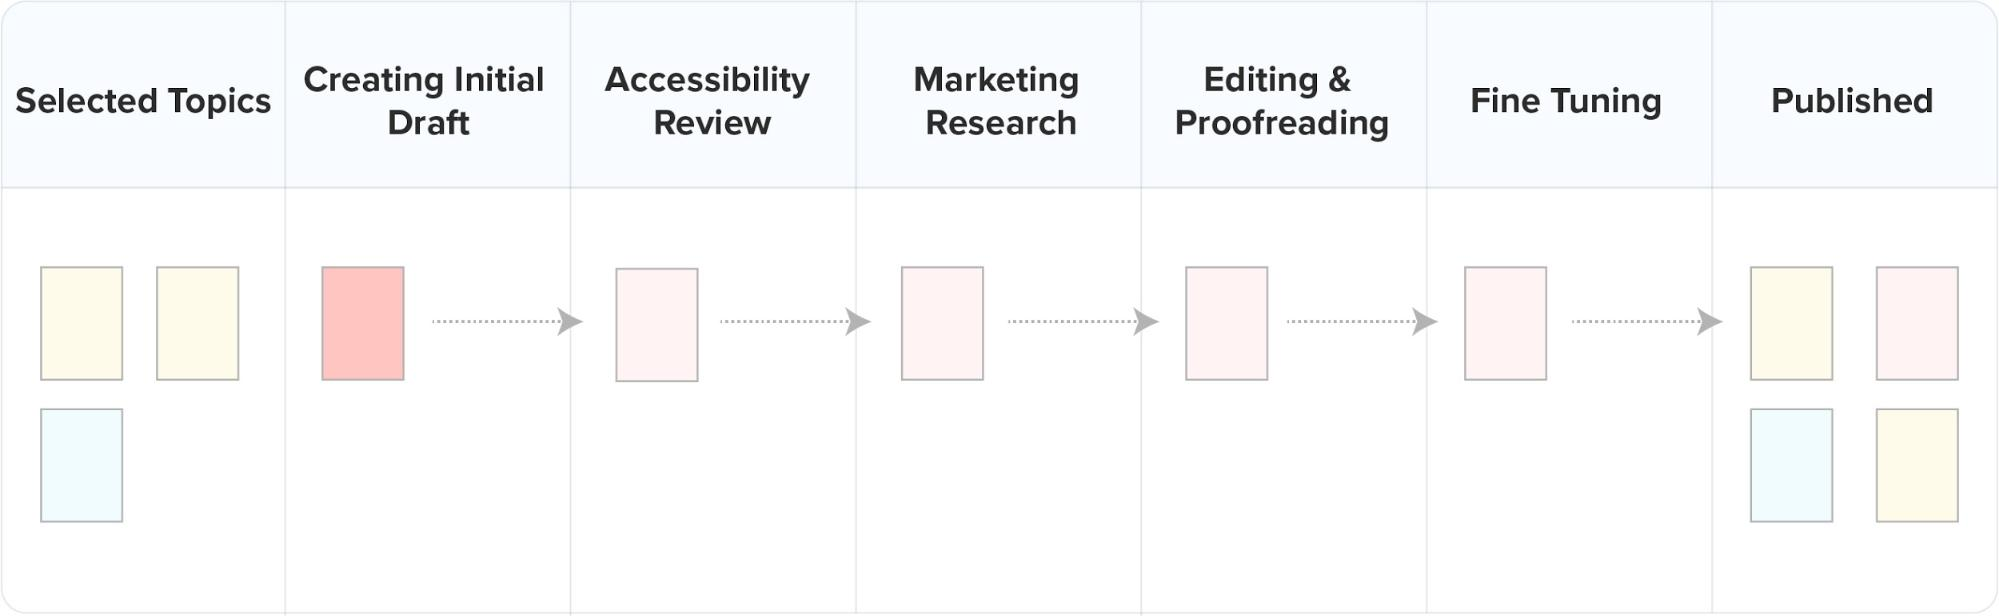 Workflow - knowledge discovery process